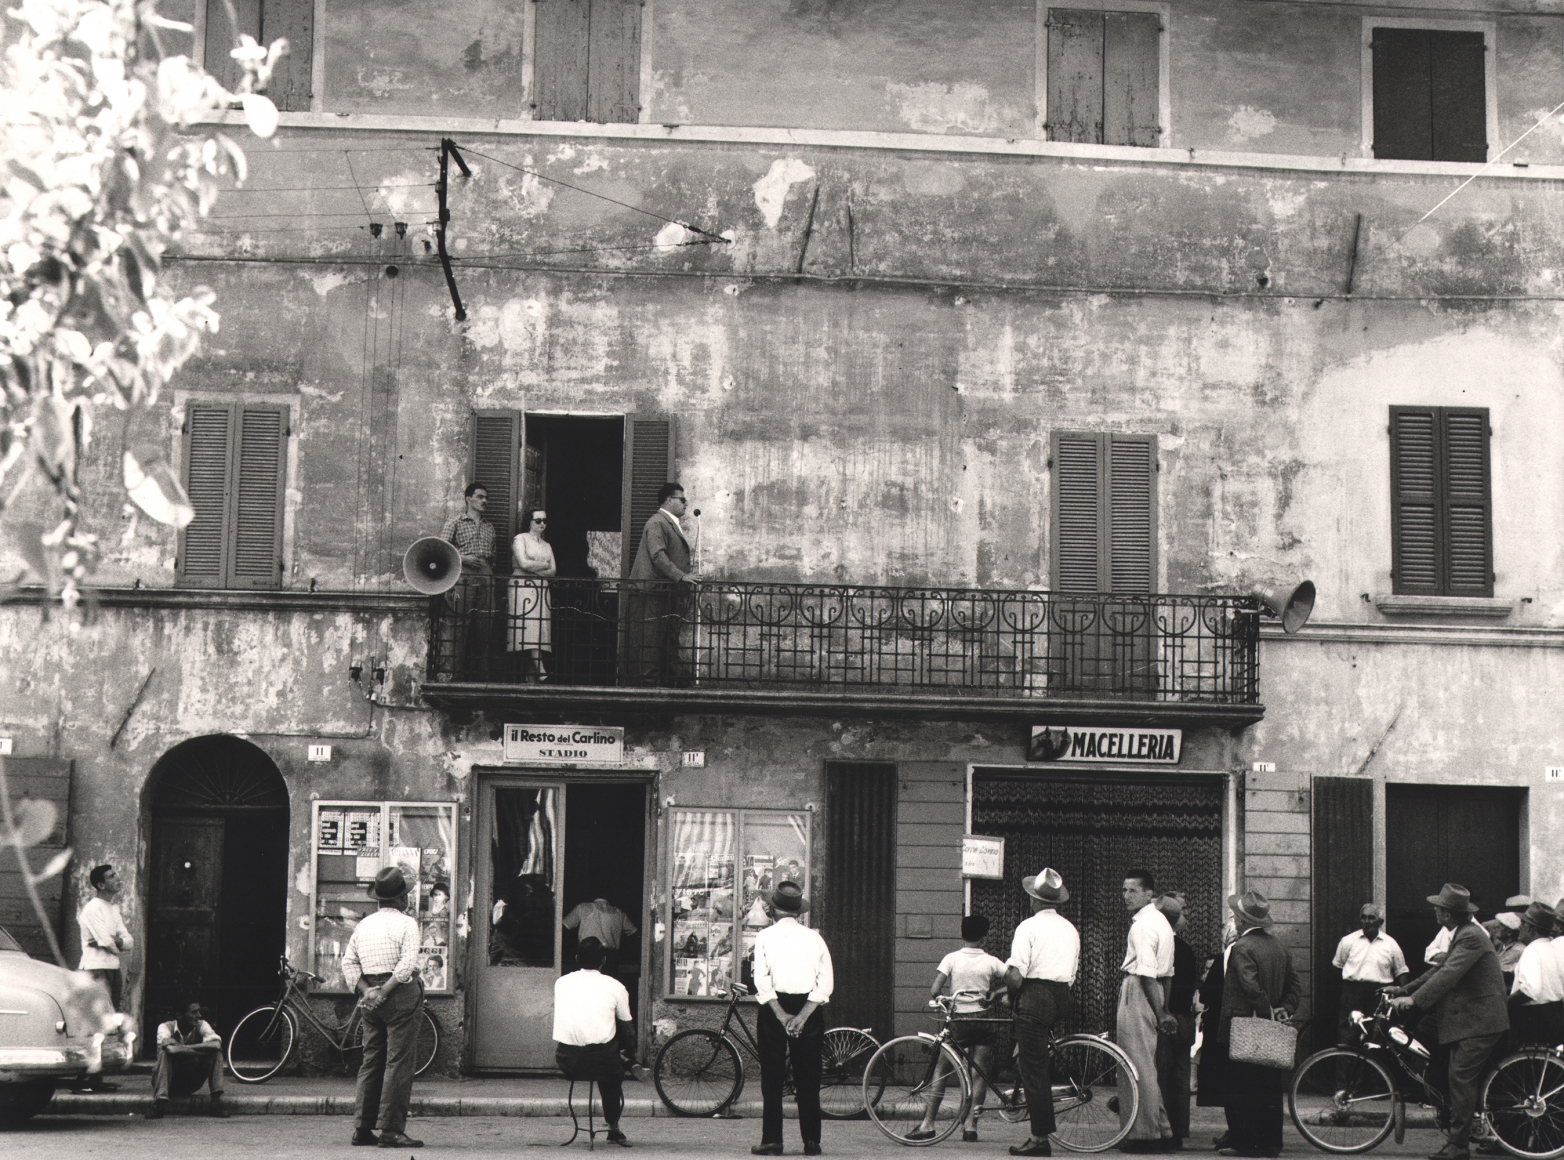 Nino Migliori, Meeting in the Province, 1957. People gather in the street as a man speaks into a microphone from a balcony.